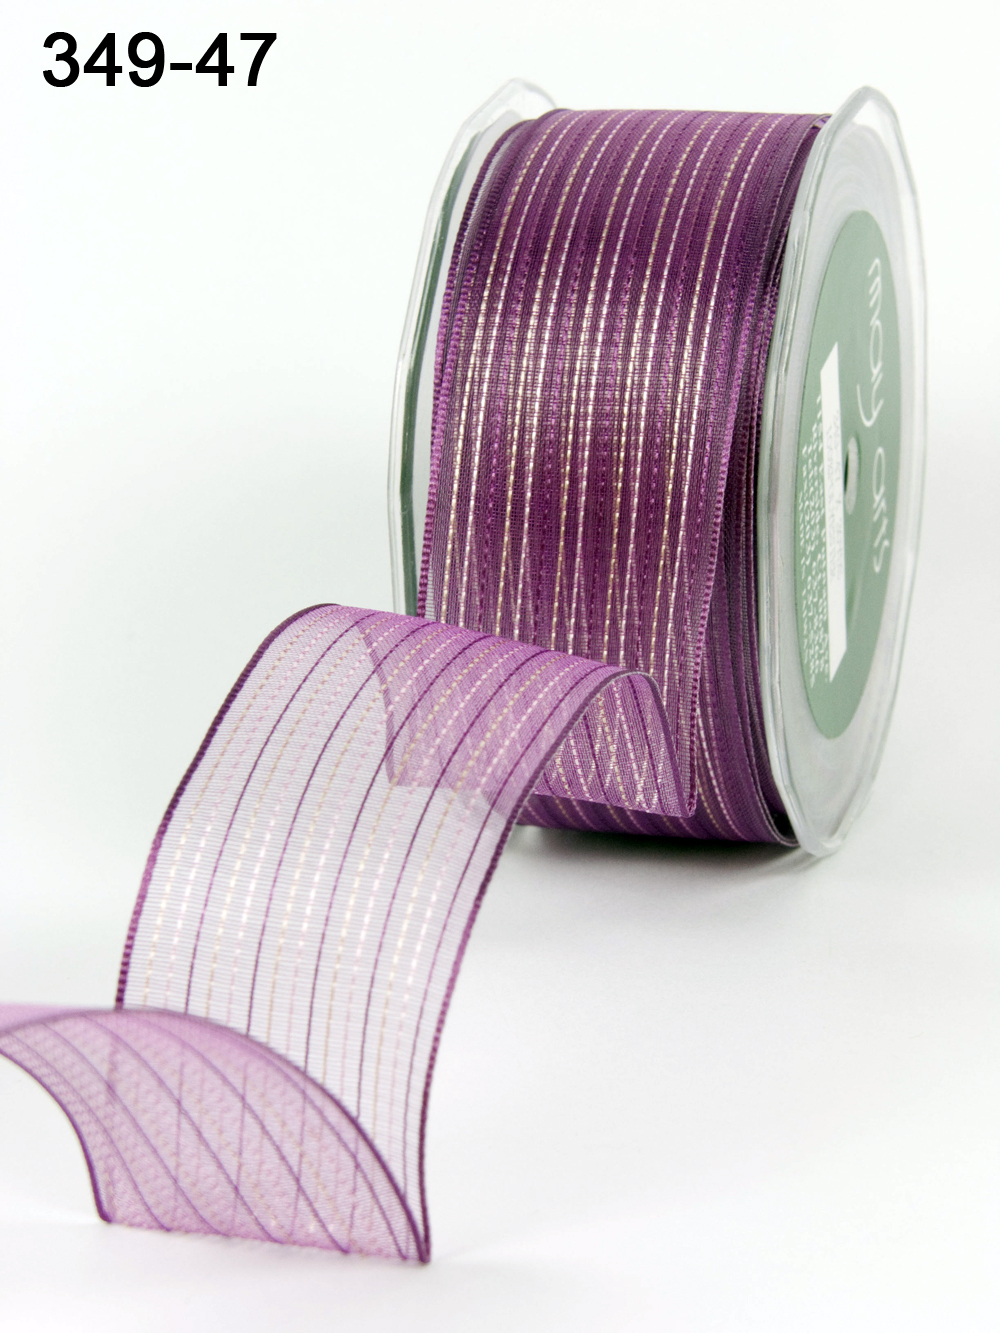 Variation #154181 of 1.5 Inch Sheer / Pinstipes (Wired) Ribbon